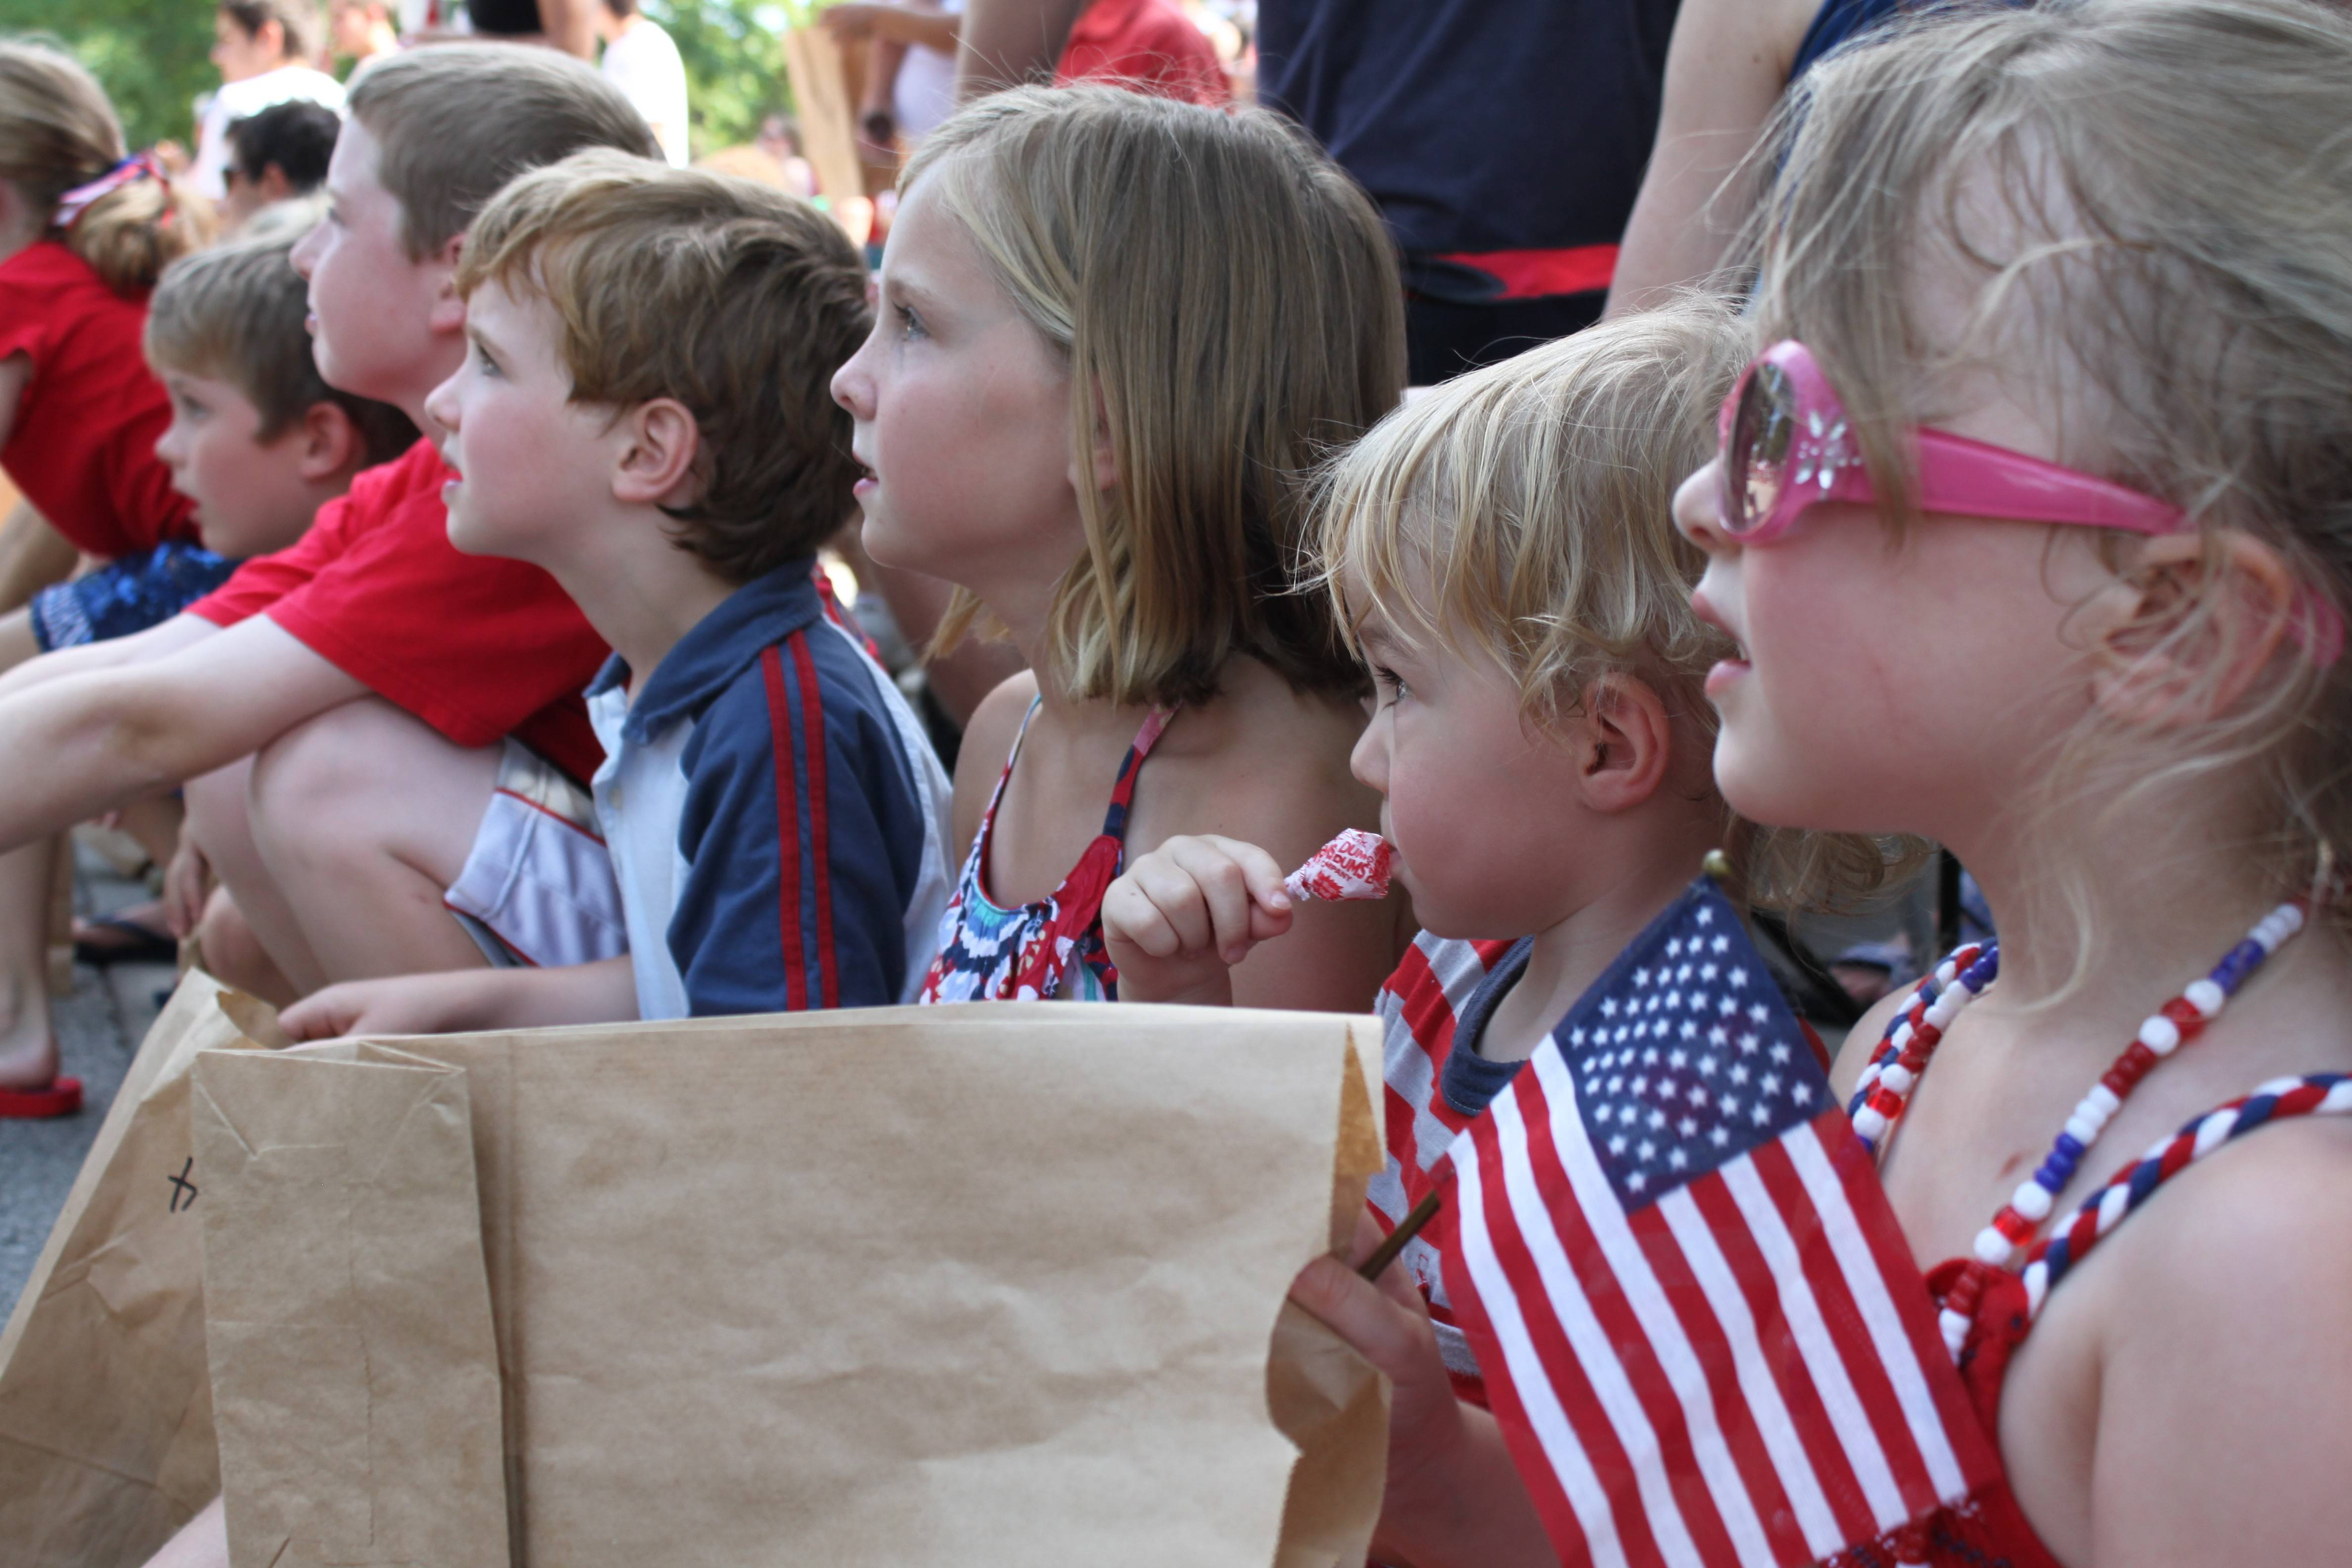 Children line Dunton Avenue in Arlington Heights for the annual Fourth of July parade.